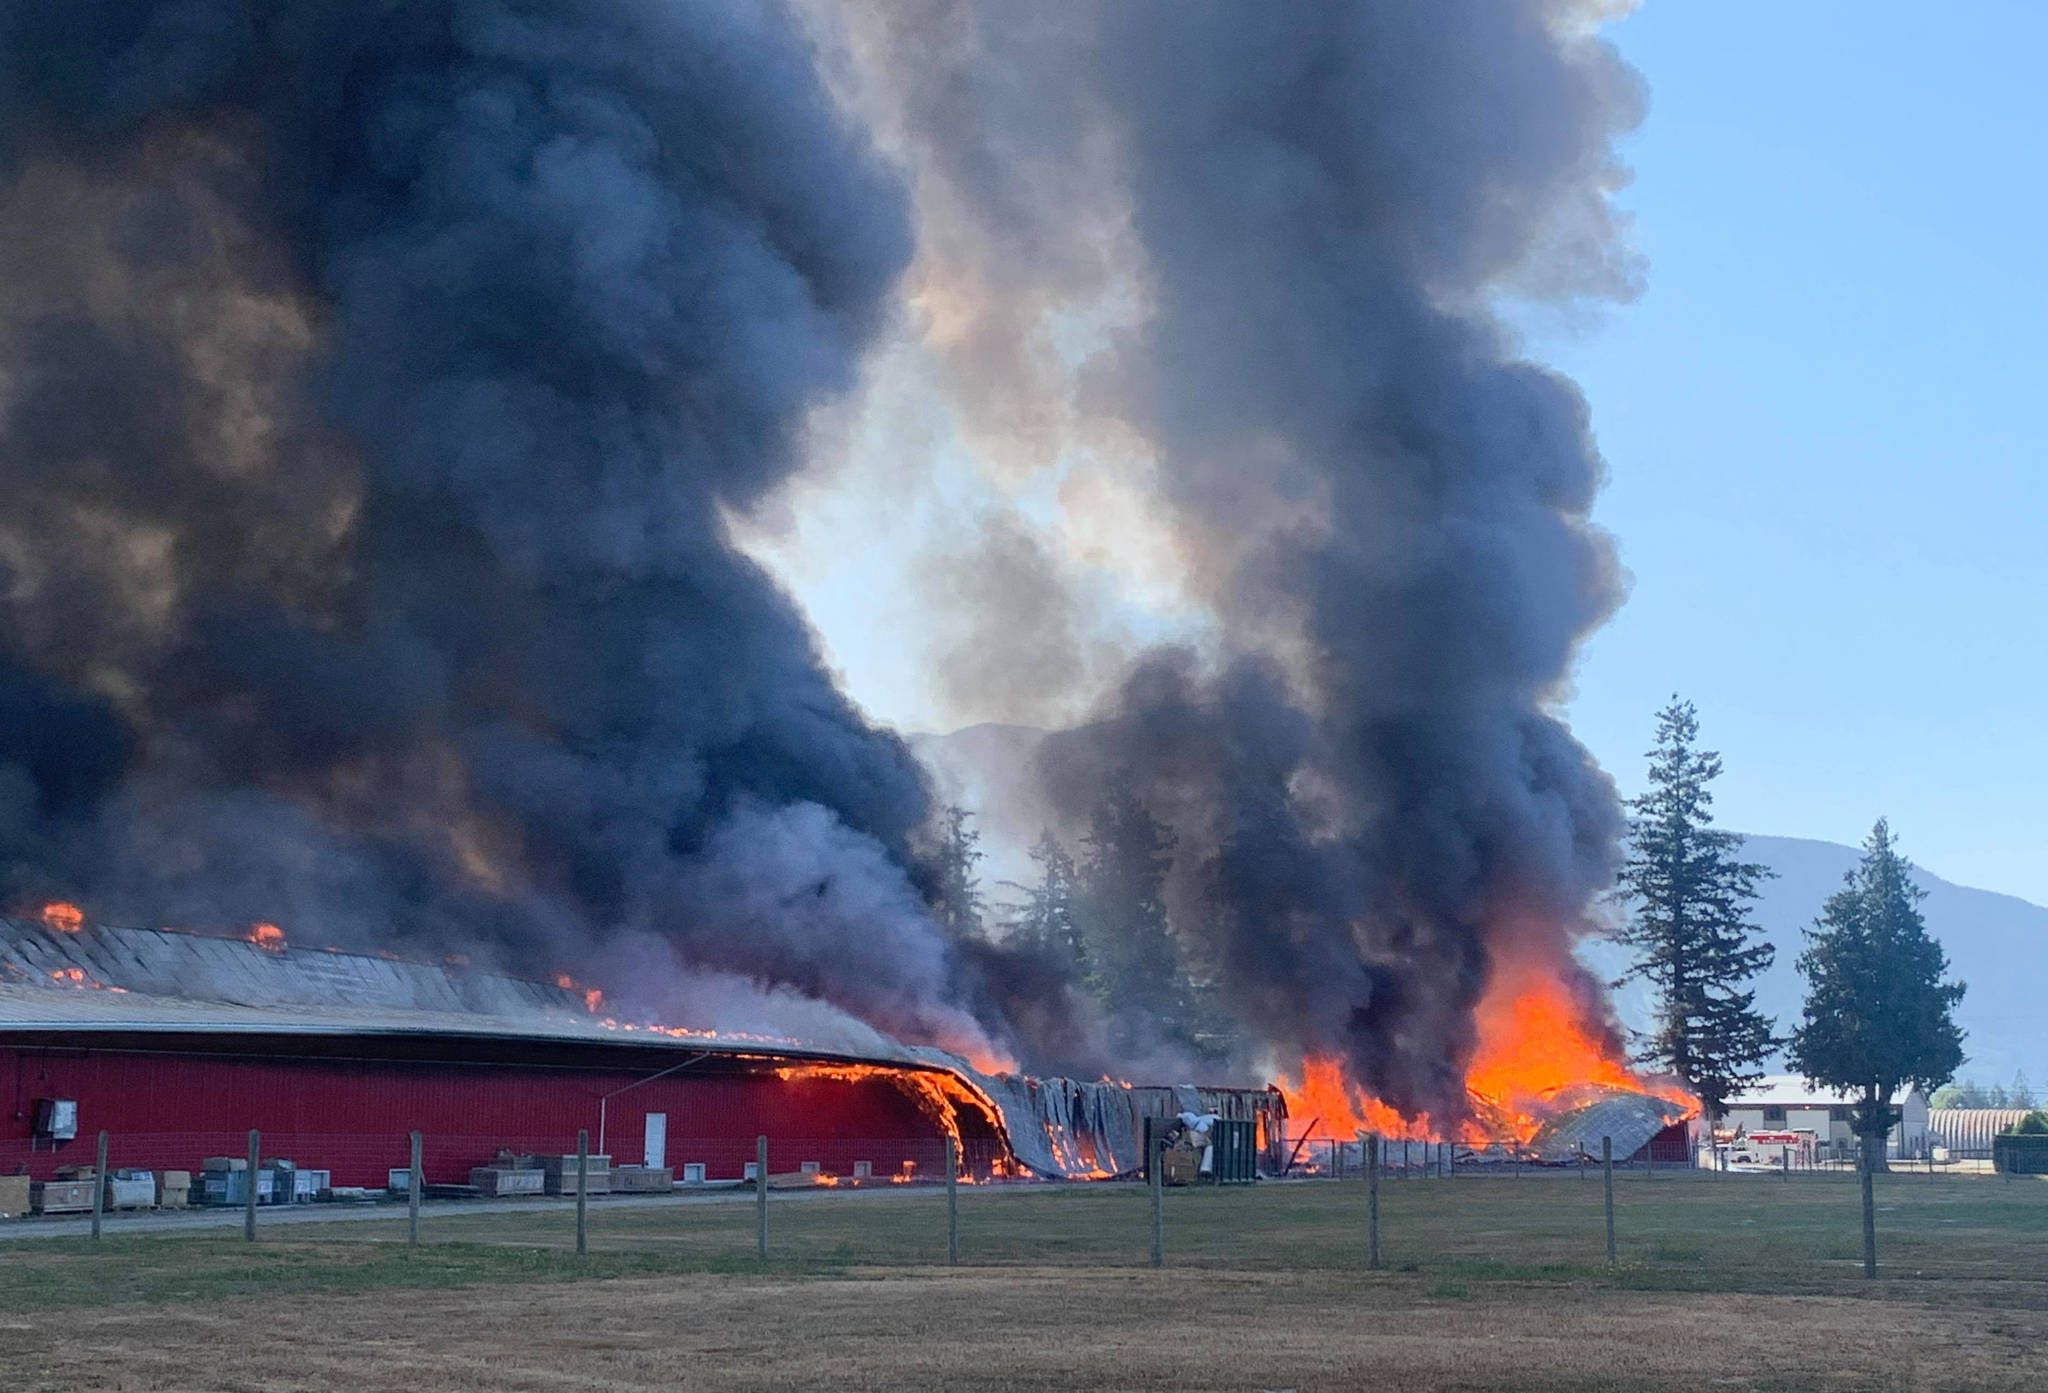 Smoke and flames can be seen billowing from a barn fire on Castleman Road in Chilliwack. (Paul Henderson/ Chilliwack Progress)